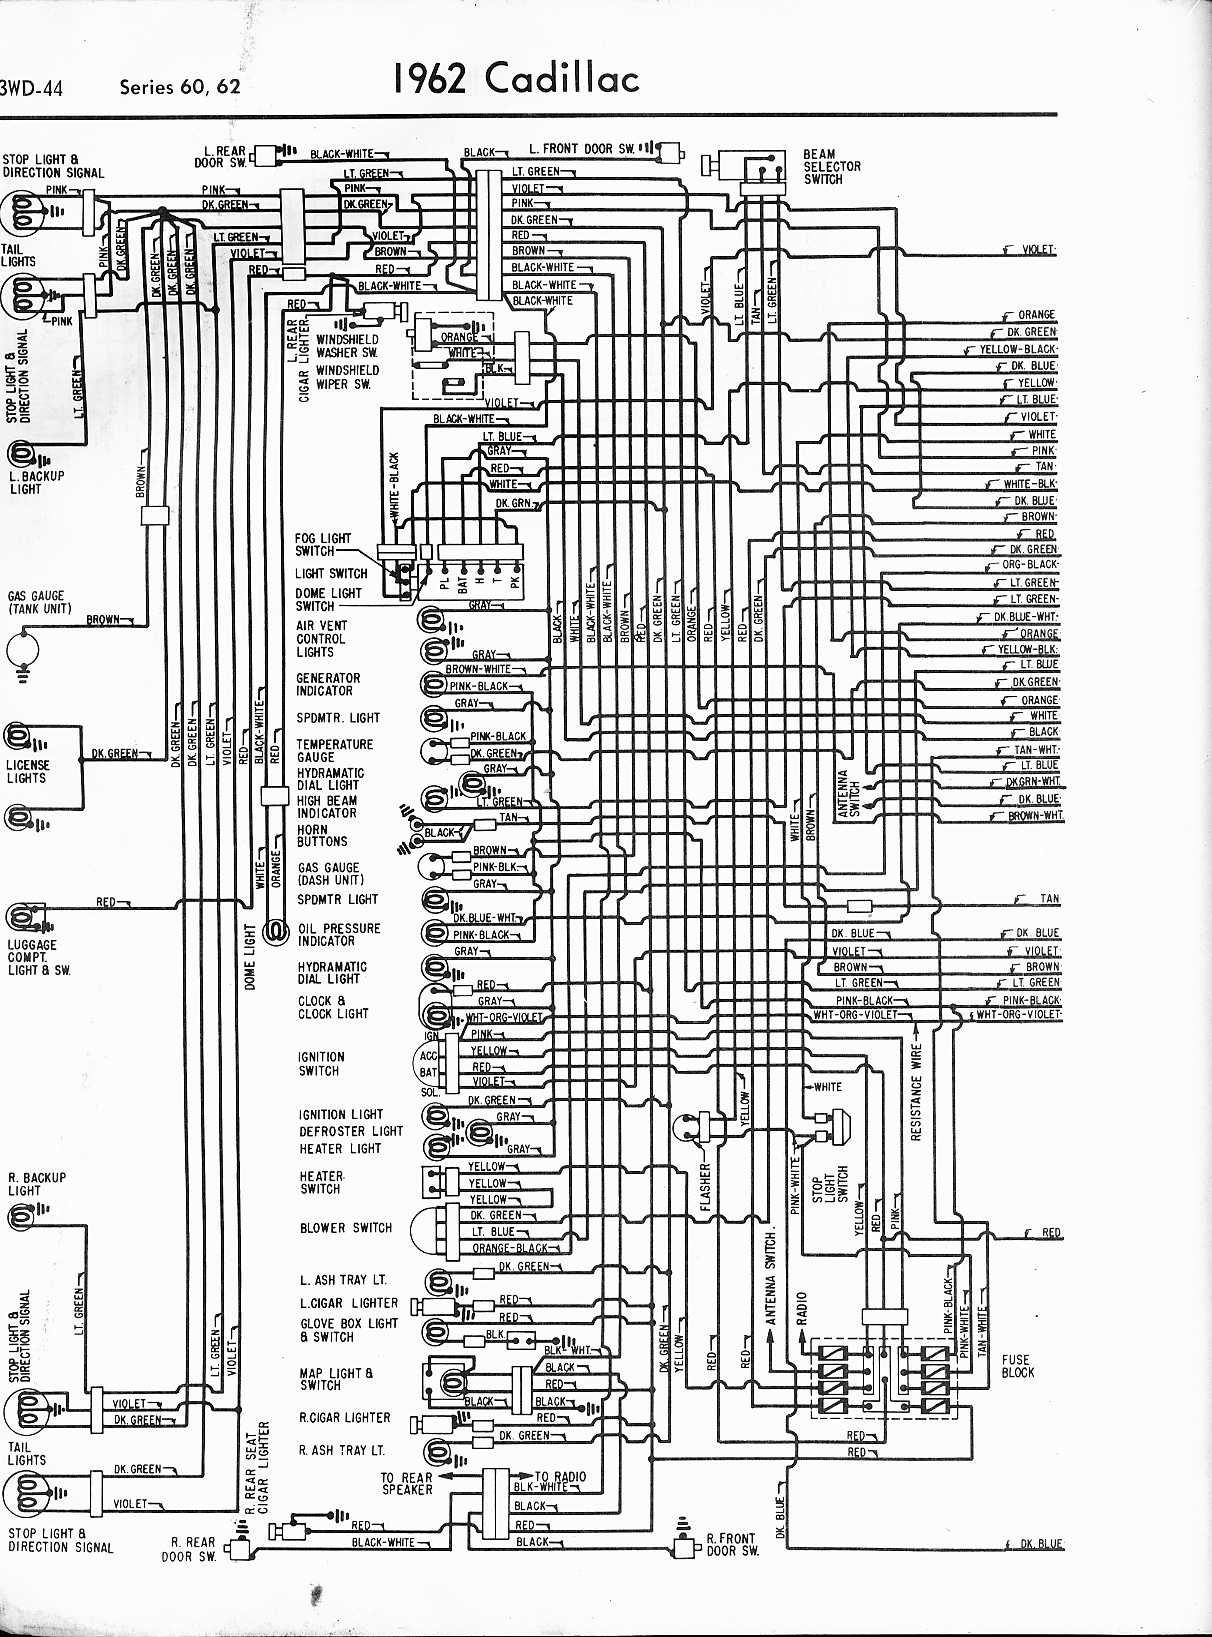 1955 cadillac wiring diagram wire data schema \u2022 1940 cadillac wiring diagram 1955 cadillac engine diagram diy enthusiasts wiring diagrams u2022 rh okdrywall co 93 cadillac deville wiring